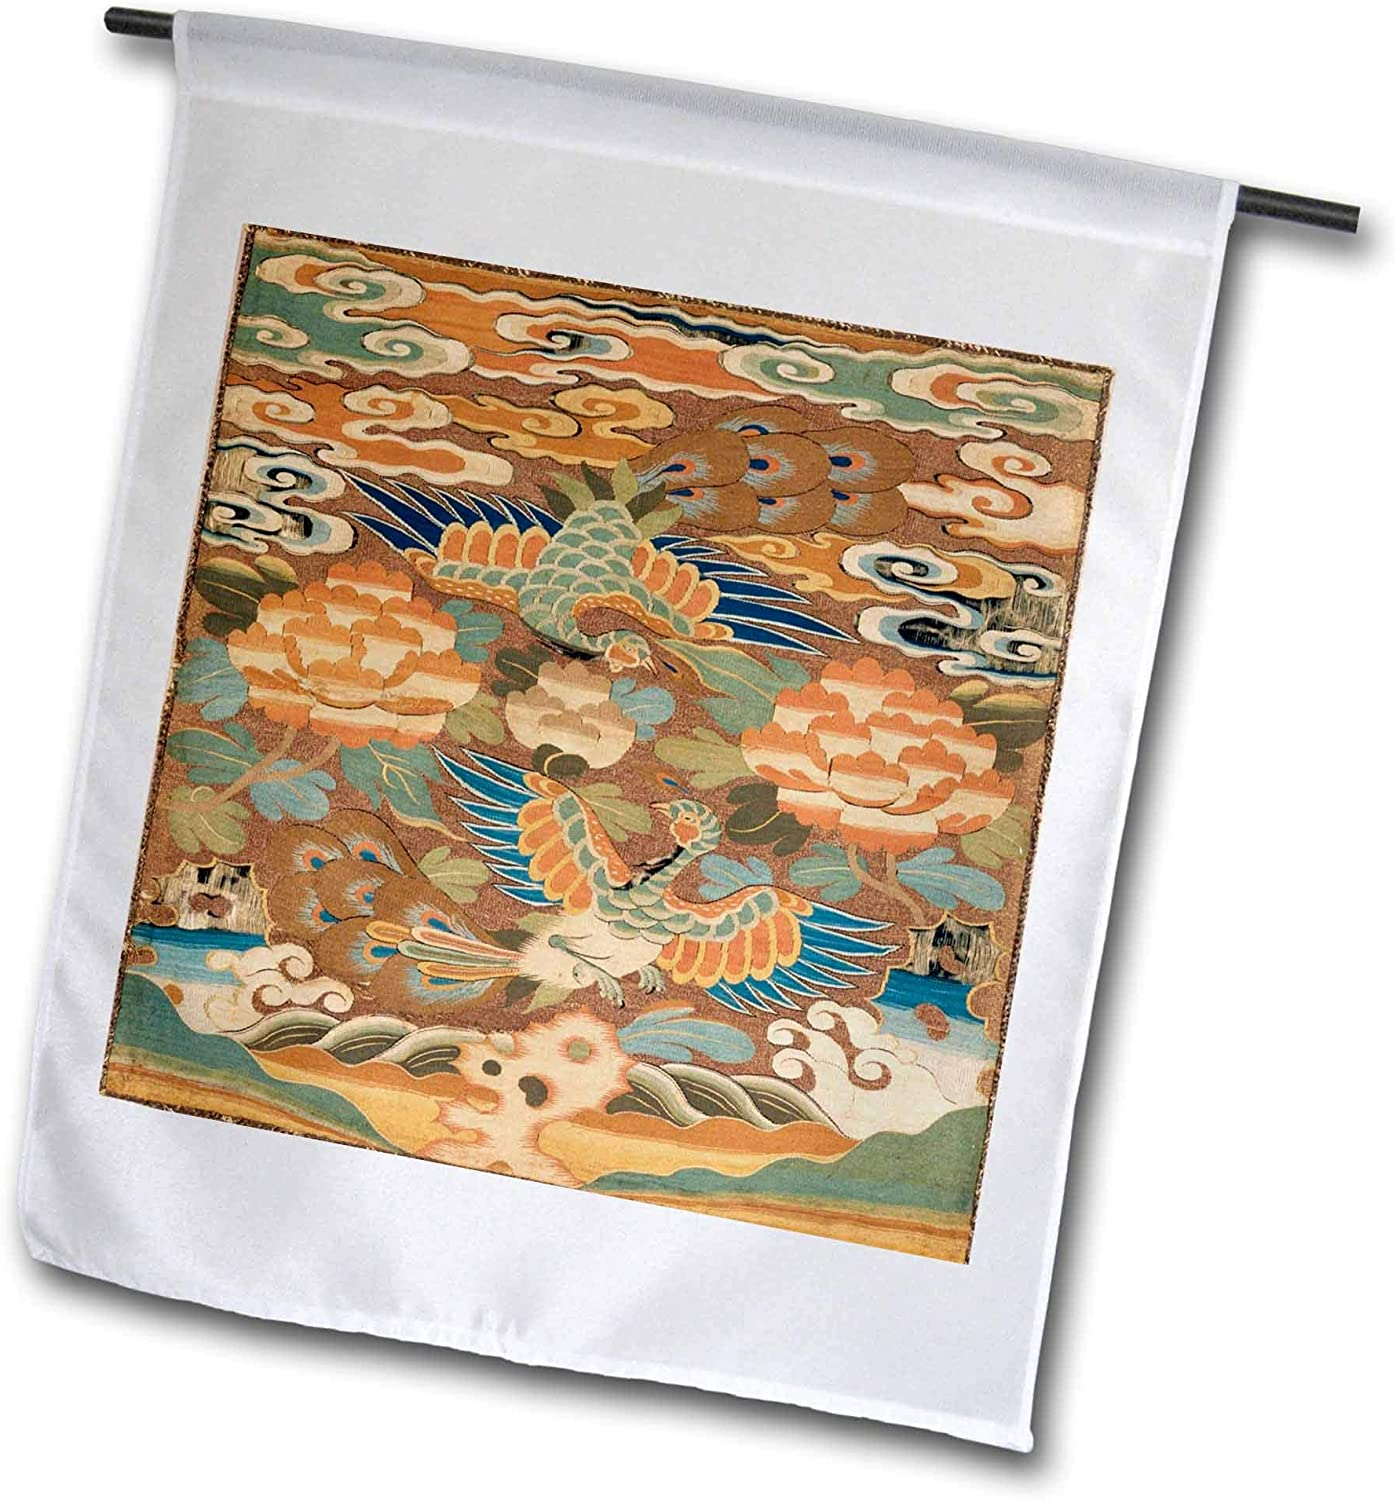 3dRose Lens Art by Florene - World Tapestries - Image of Chinese Pheasant and Floral Wall Hanging - 12 x 18 inch Garden Flag (fl_302030_1)